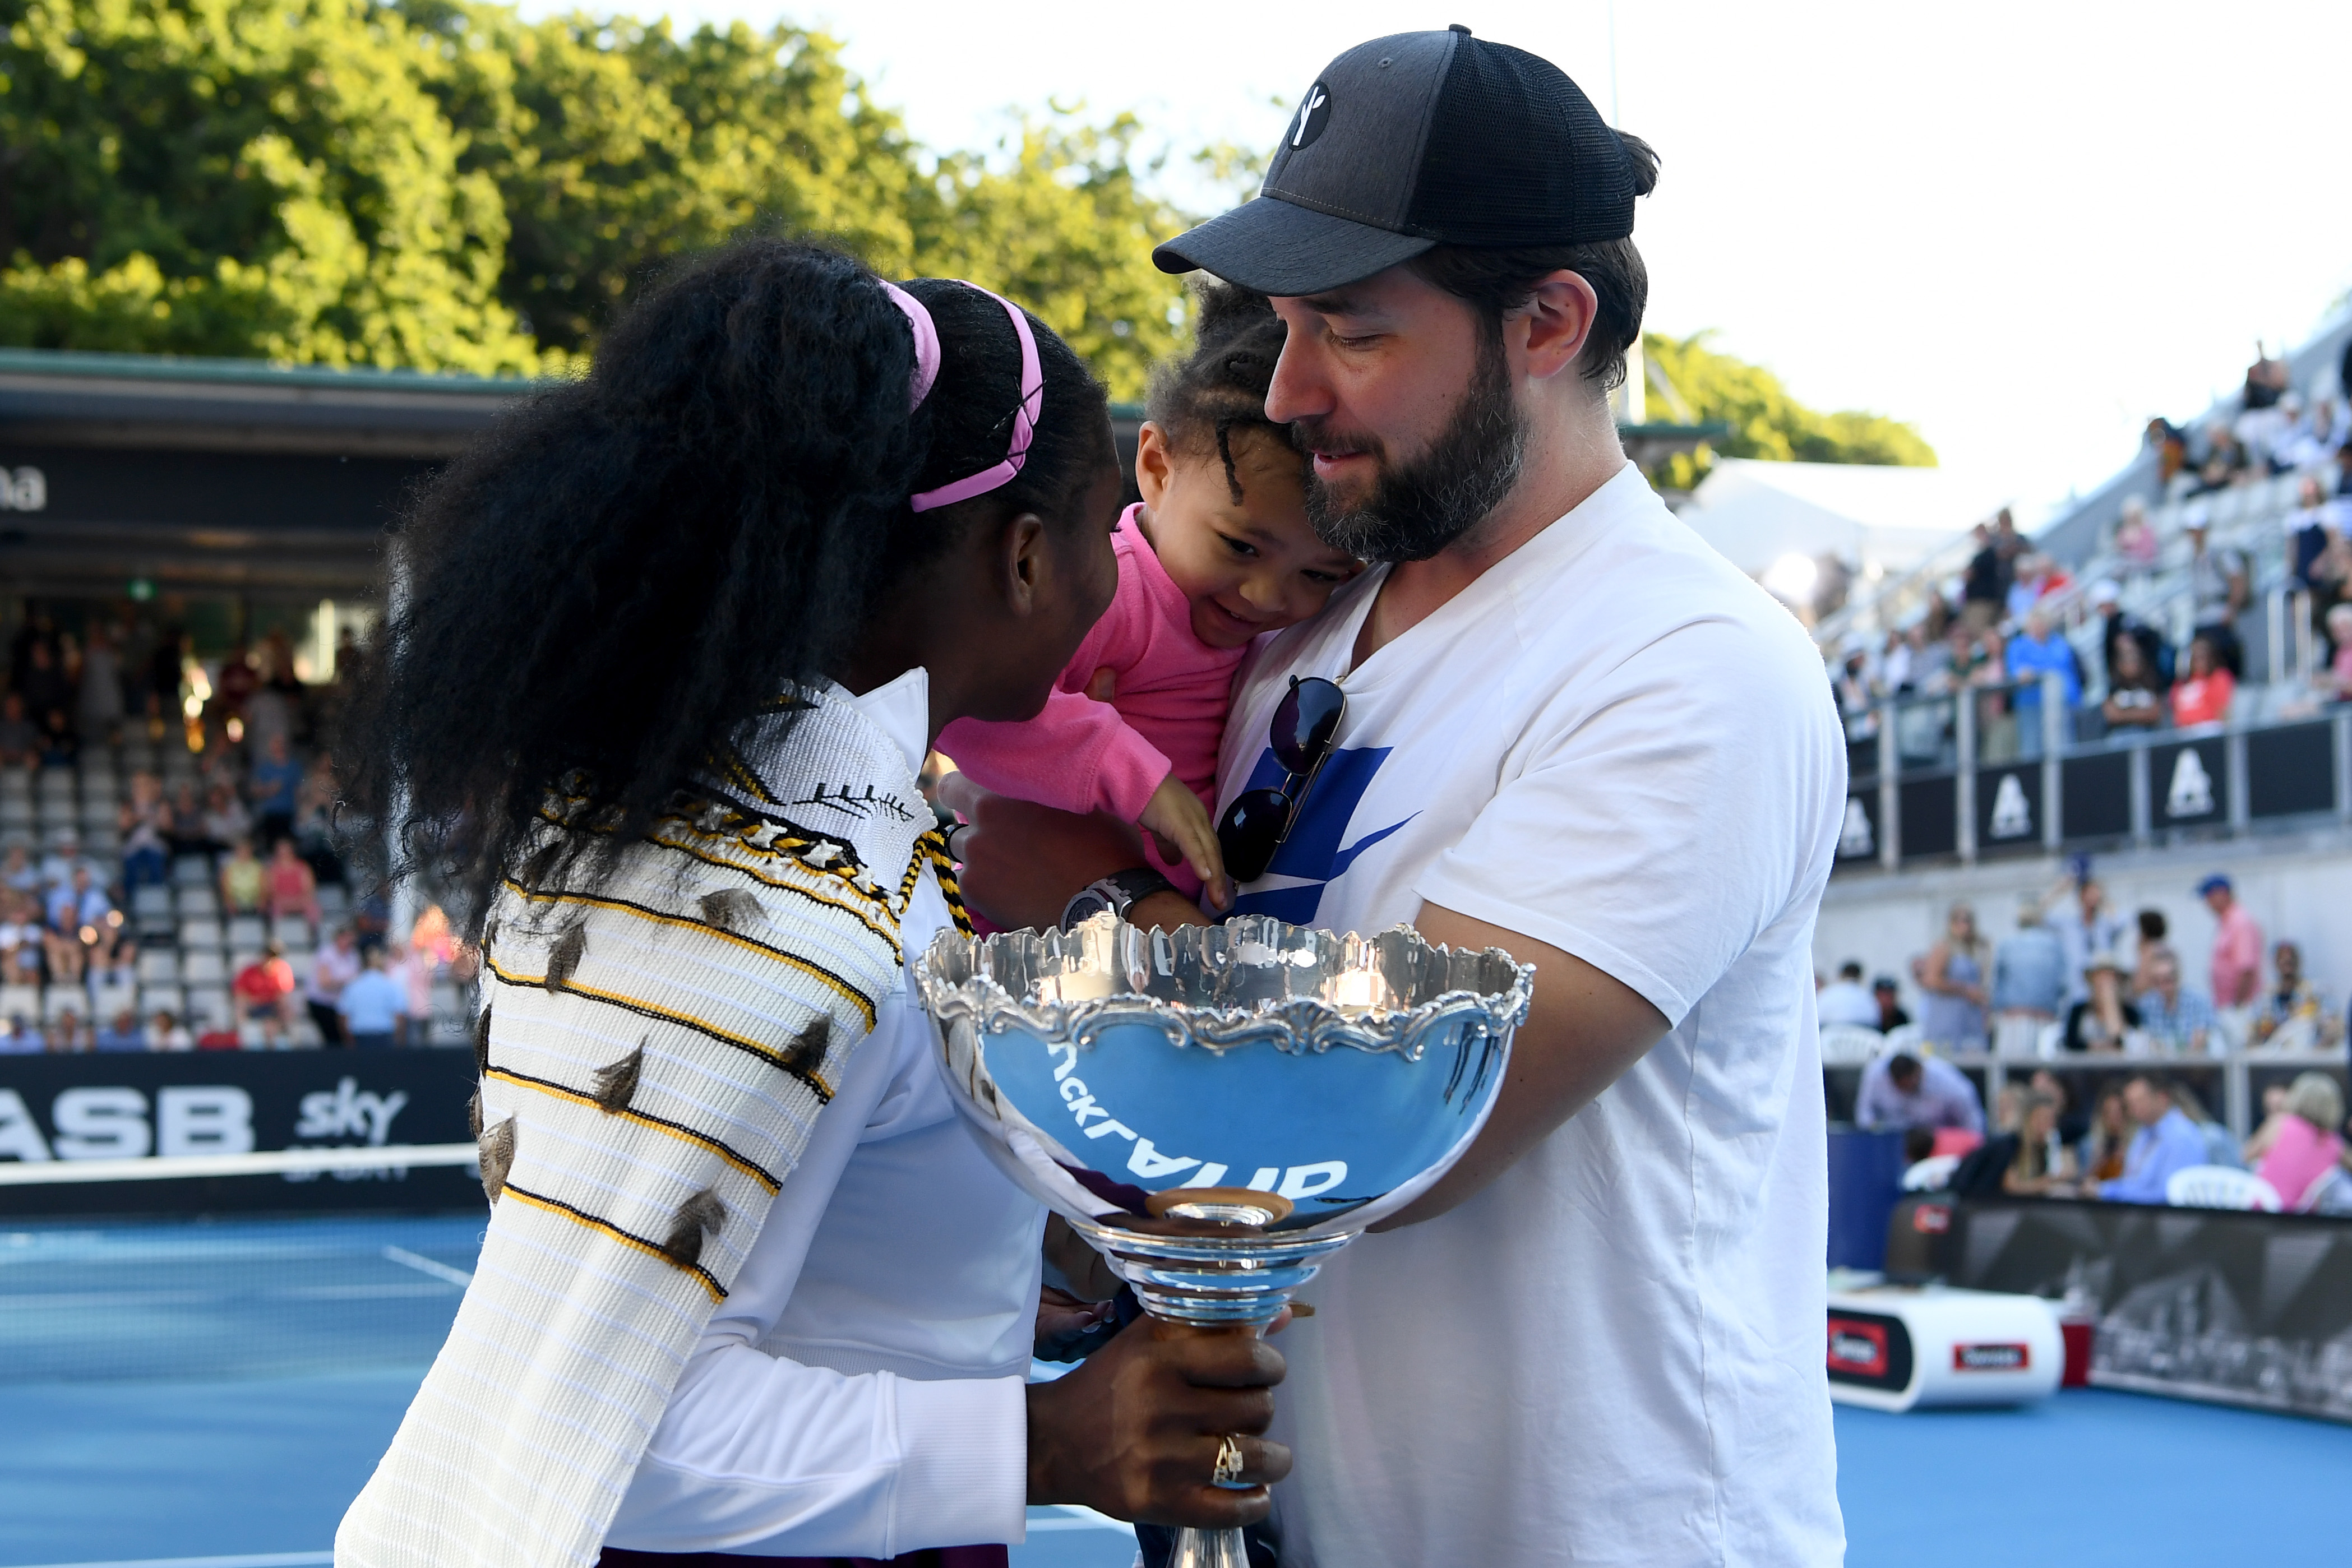 Alexis Olympia, daughter of Serena Williams and husband Alexis Ohanian congratulate Serena Williams in 2020